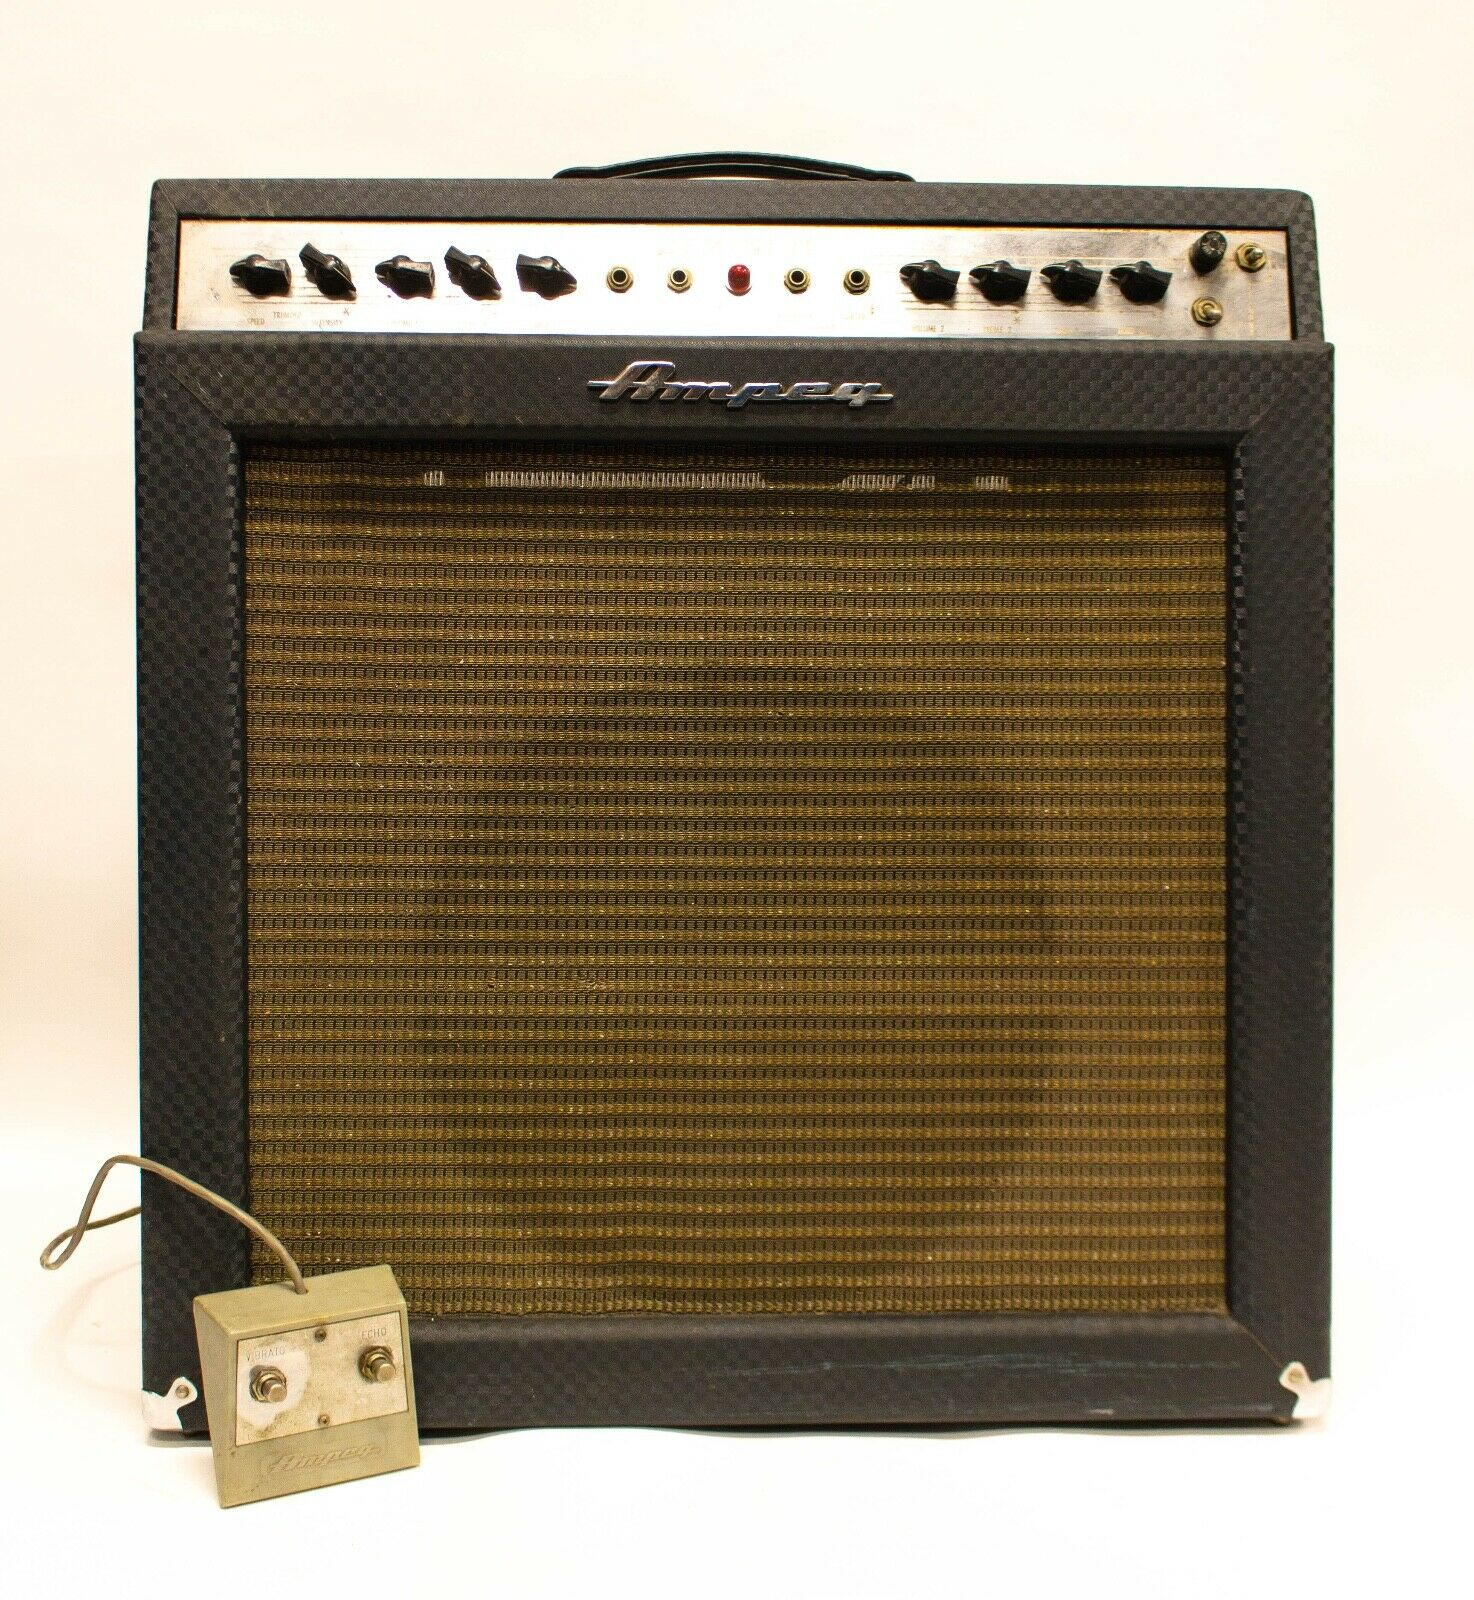 Ampeg Gemini II Model G-15 30-Watt 1x15  Guitar Combo Amplifier with Footswitch